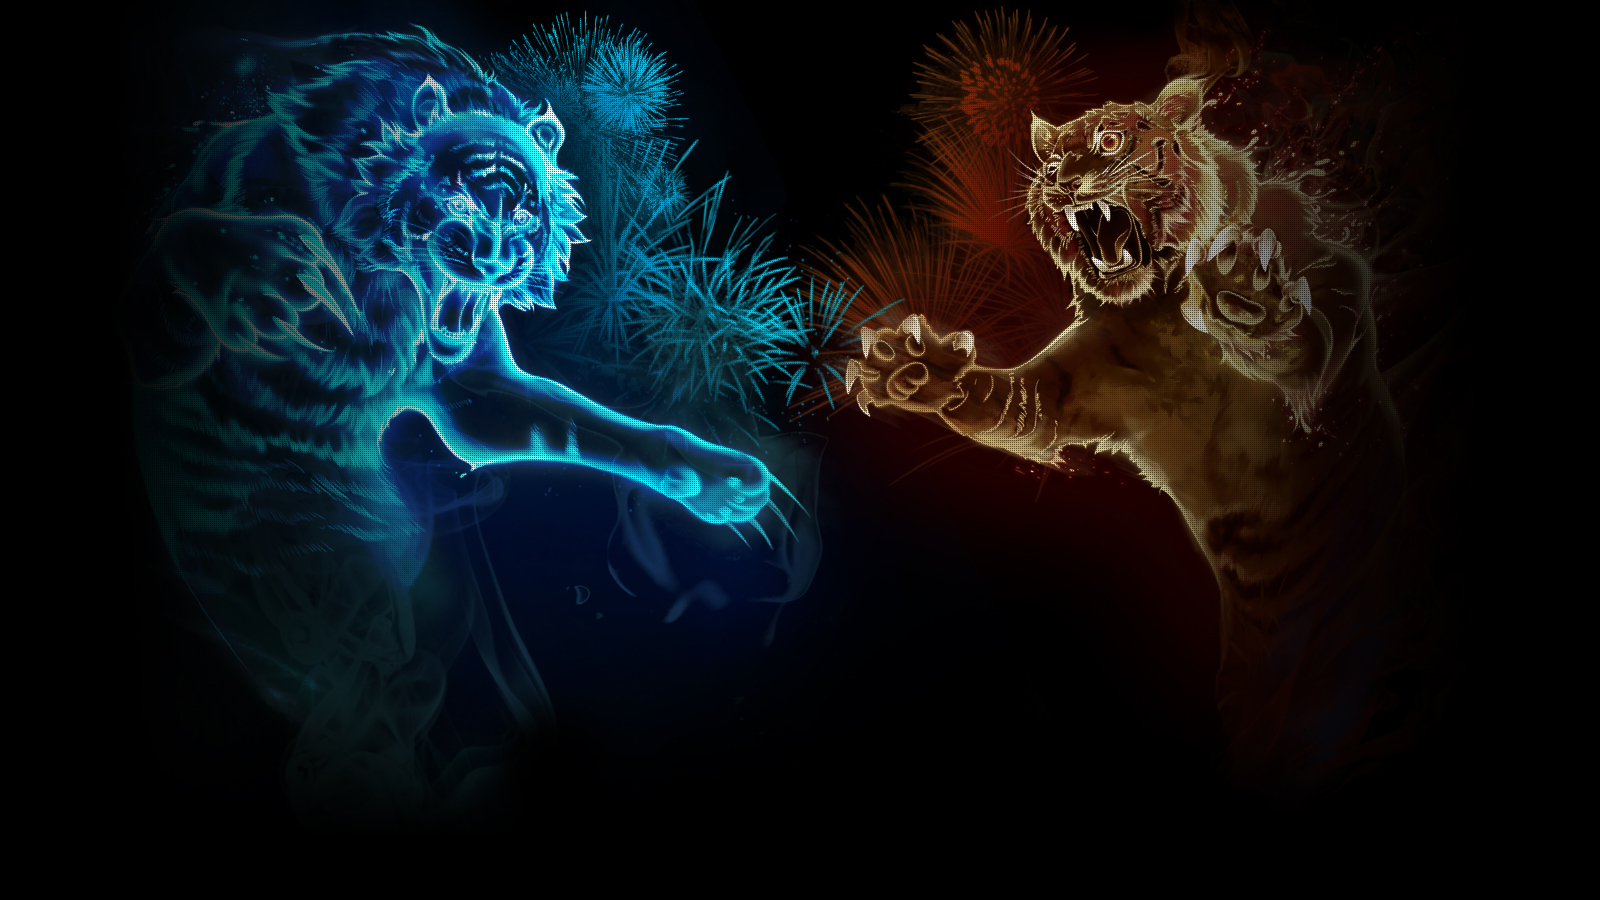 1600x998px cool tiger backgrounds - wallpapersafari